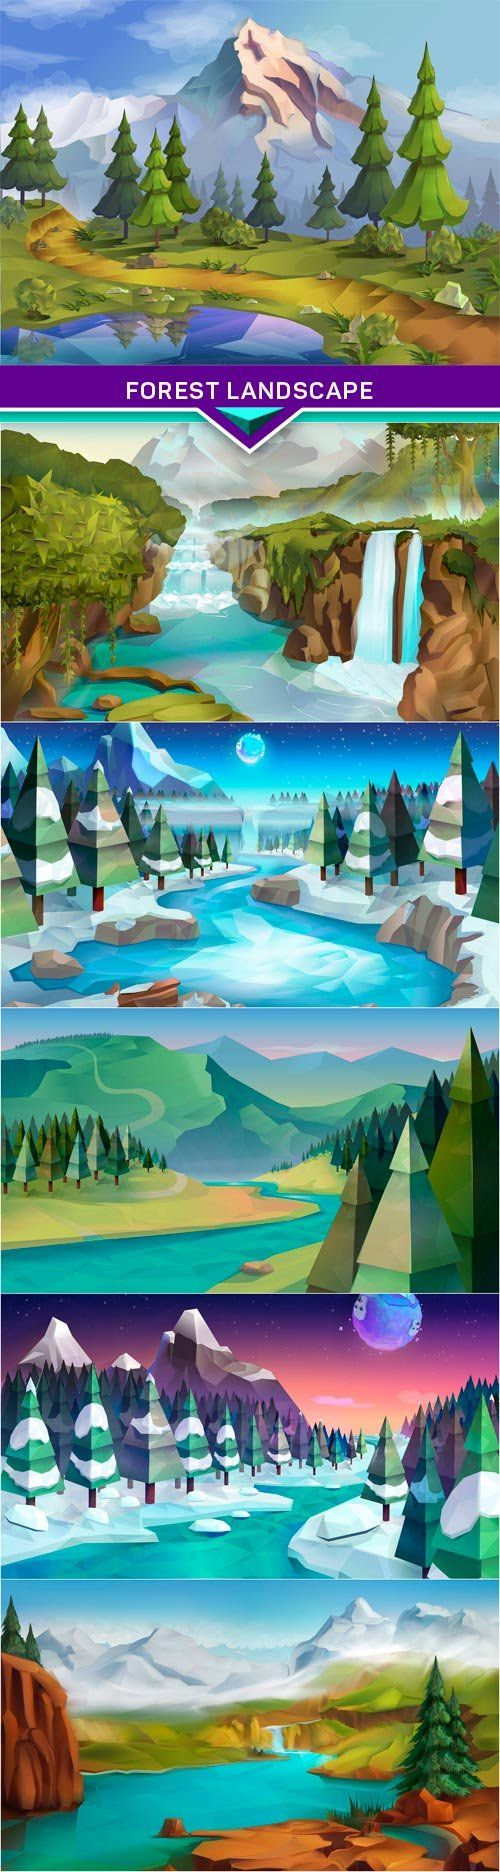 Forest landscape nature vector background 6x EPS